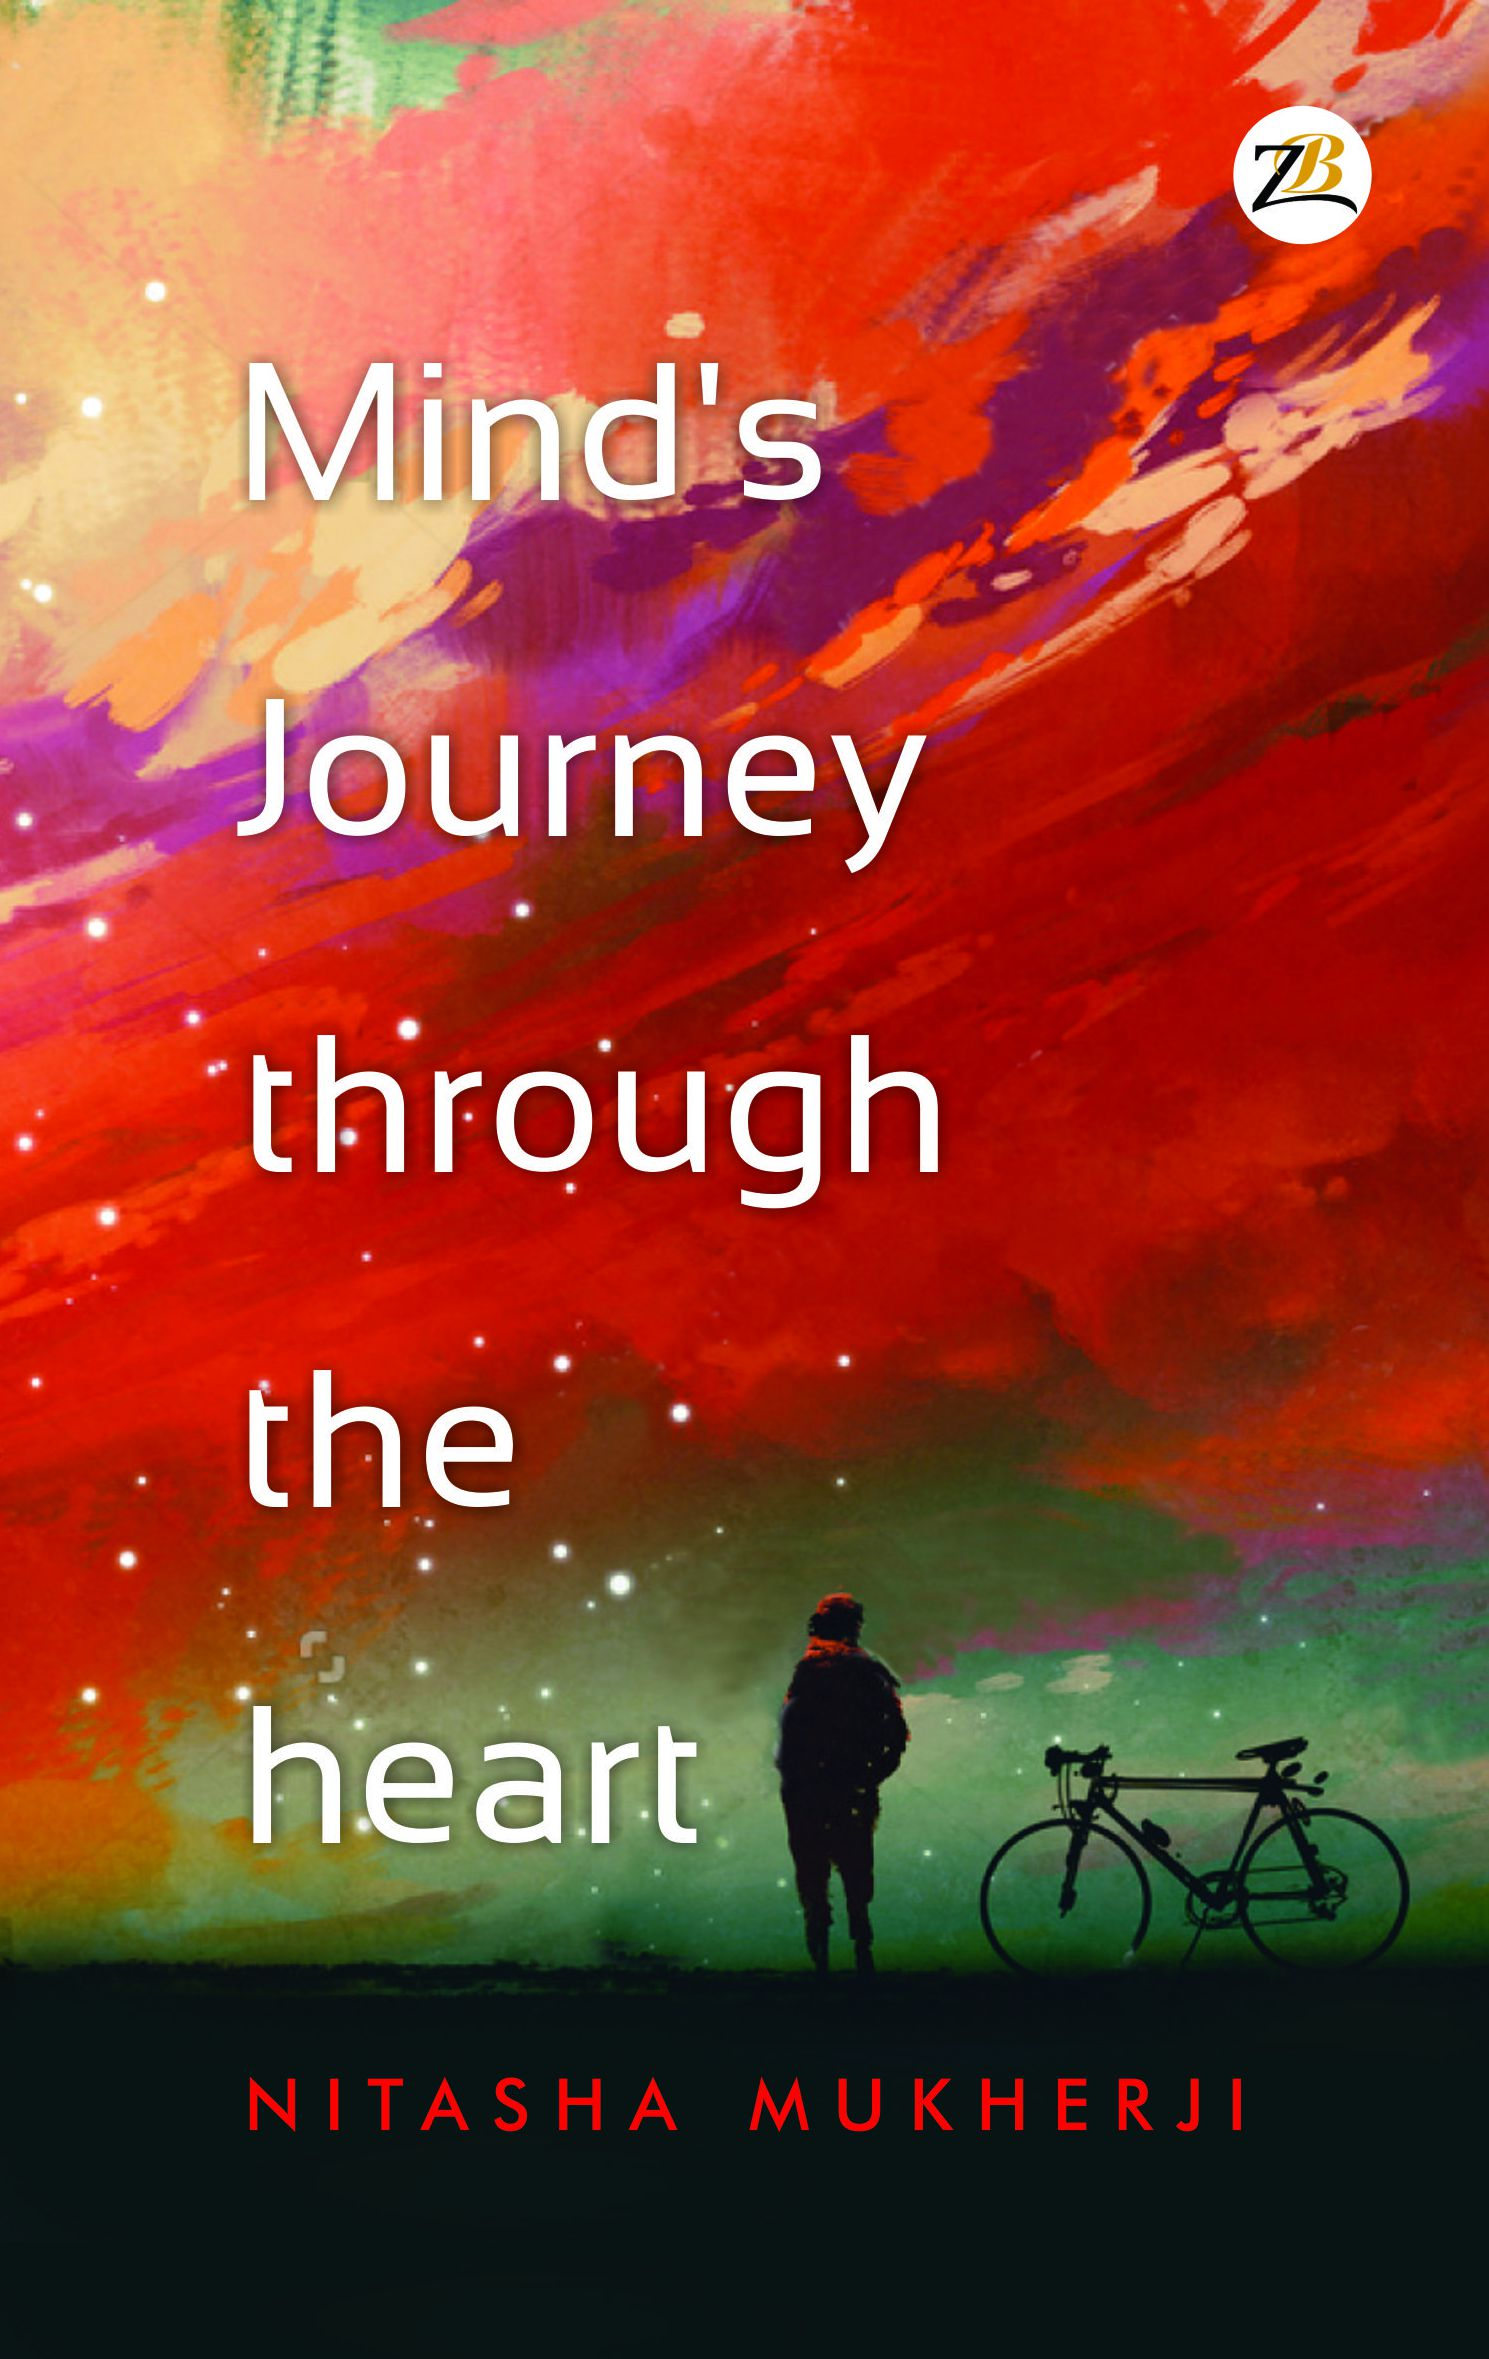 Minds Journey through the heart